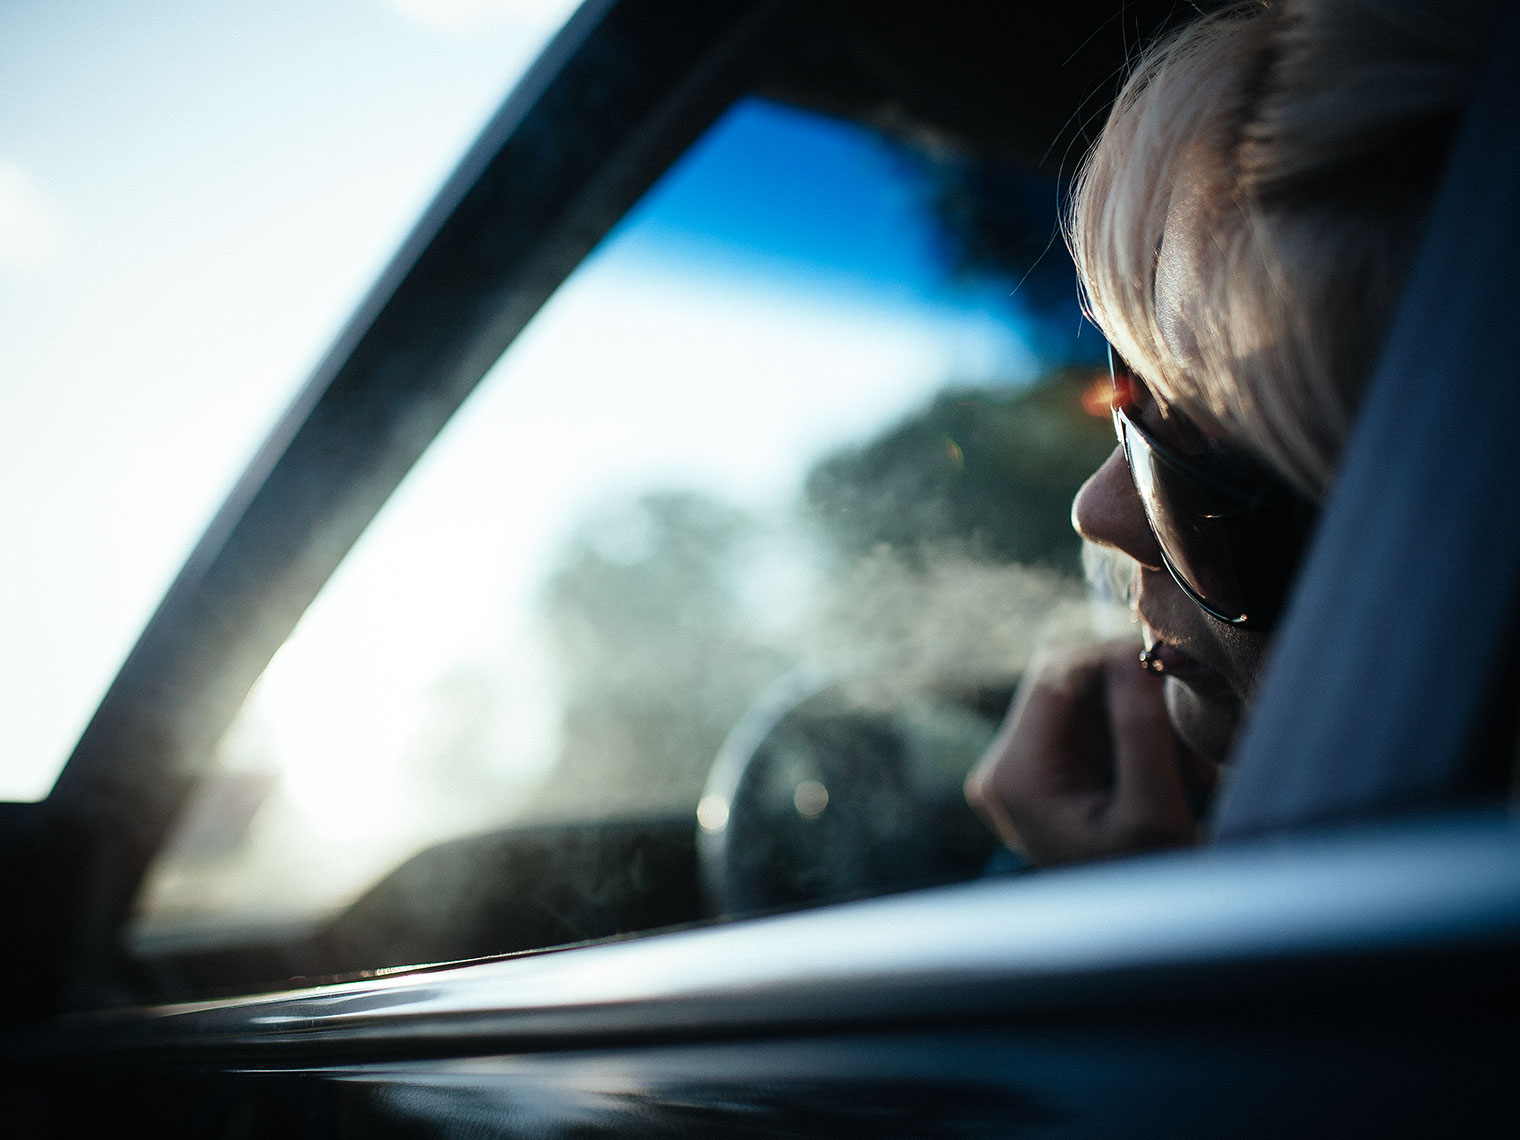 Girl smoking out of her car